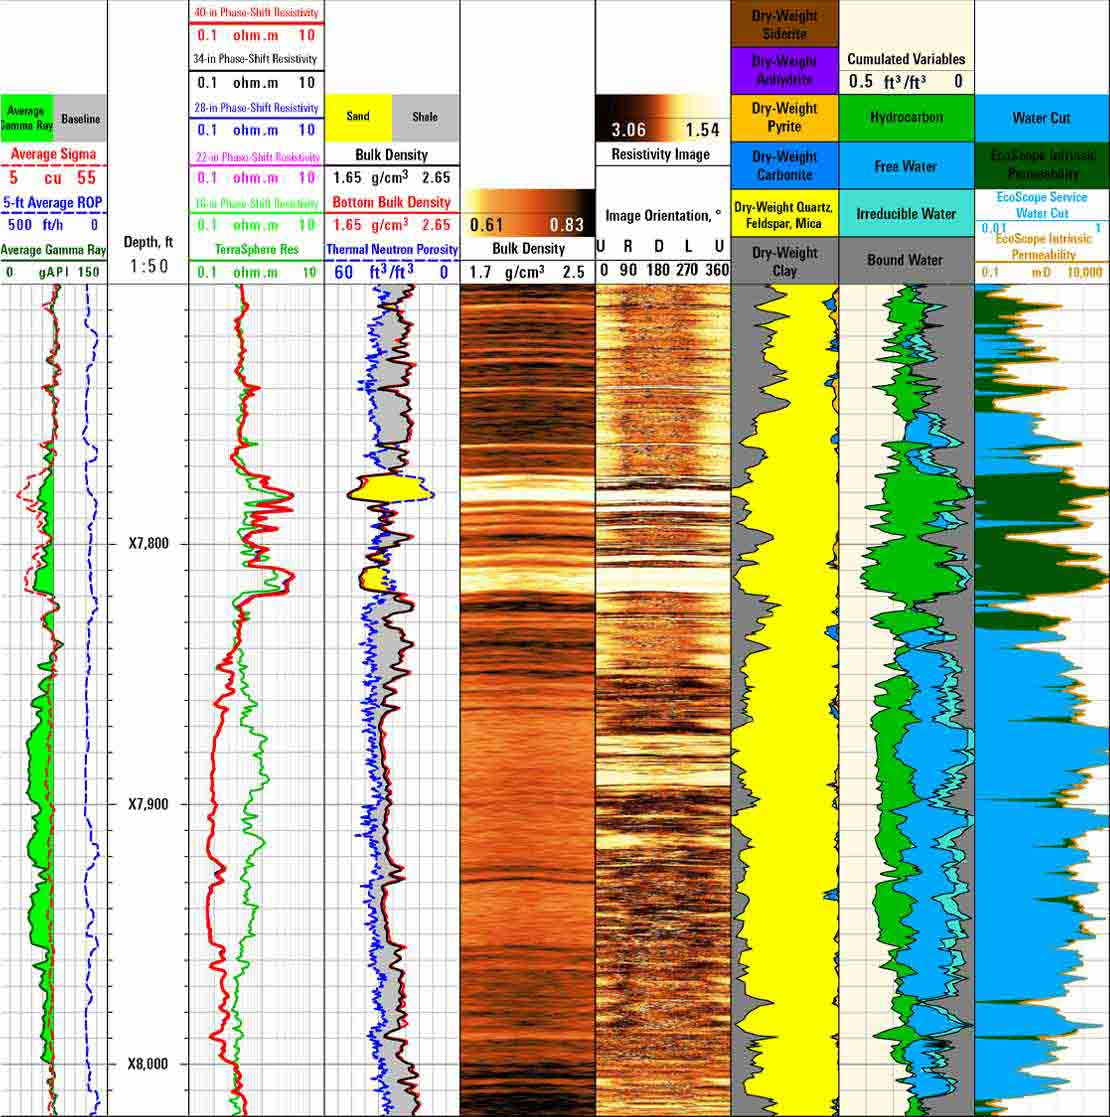 LWD log from Gulf of Mexico drilling operation.